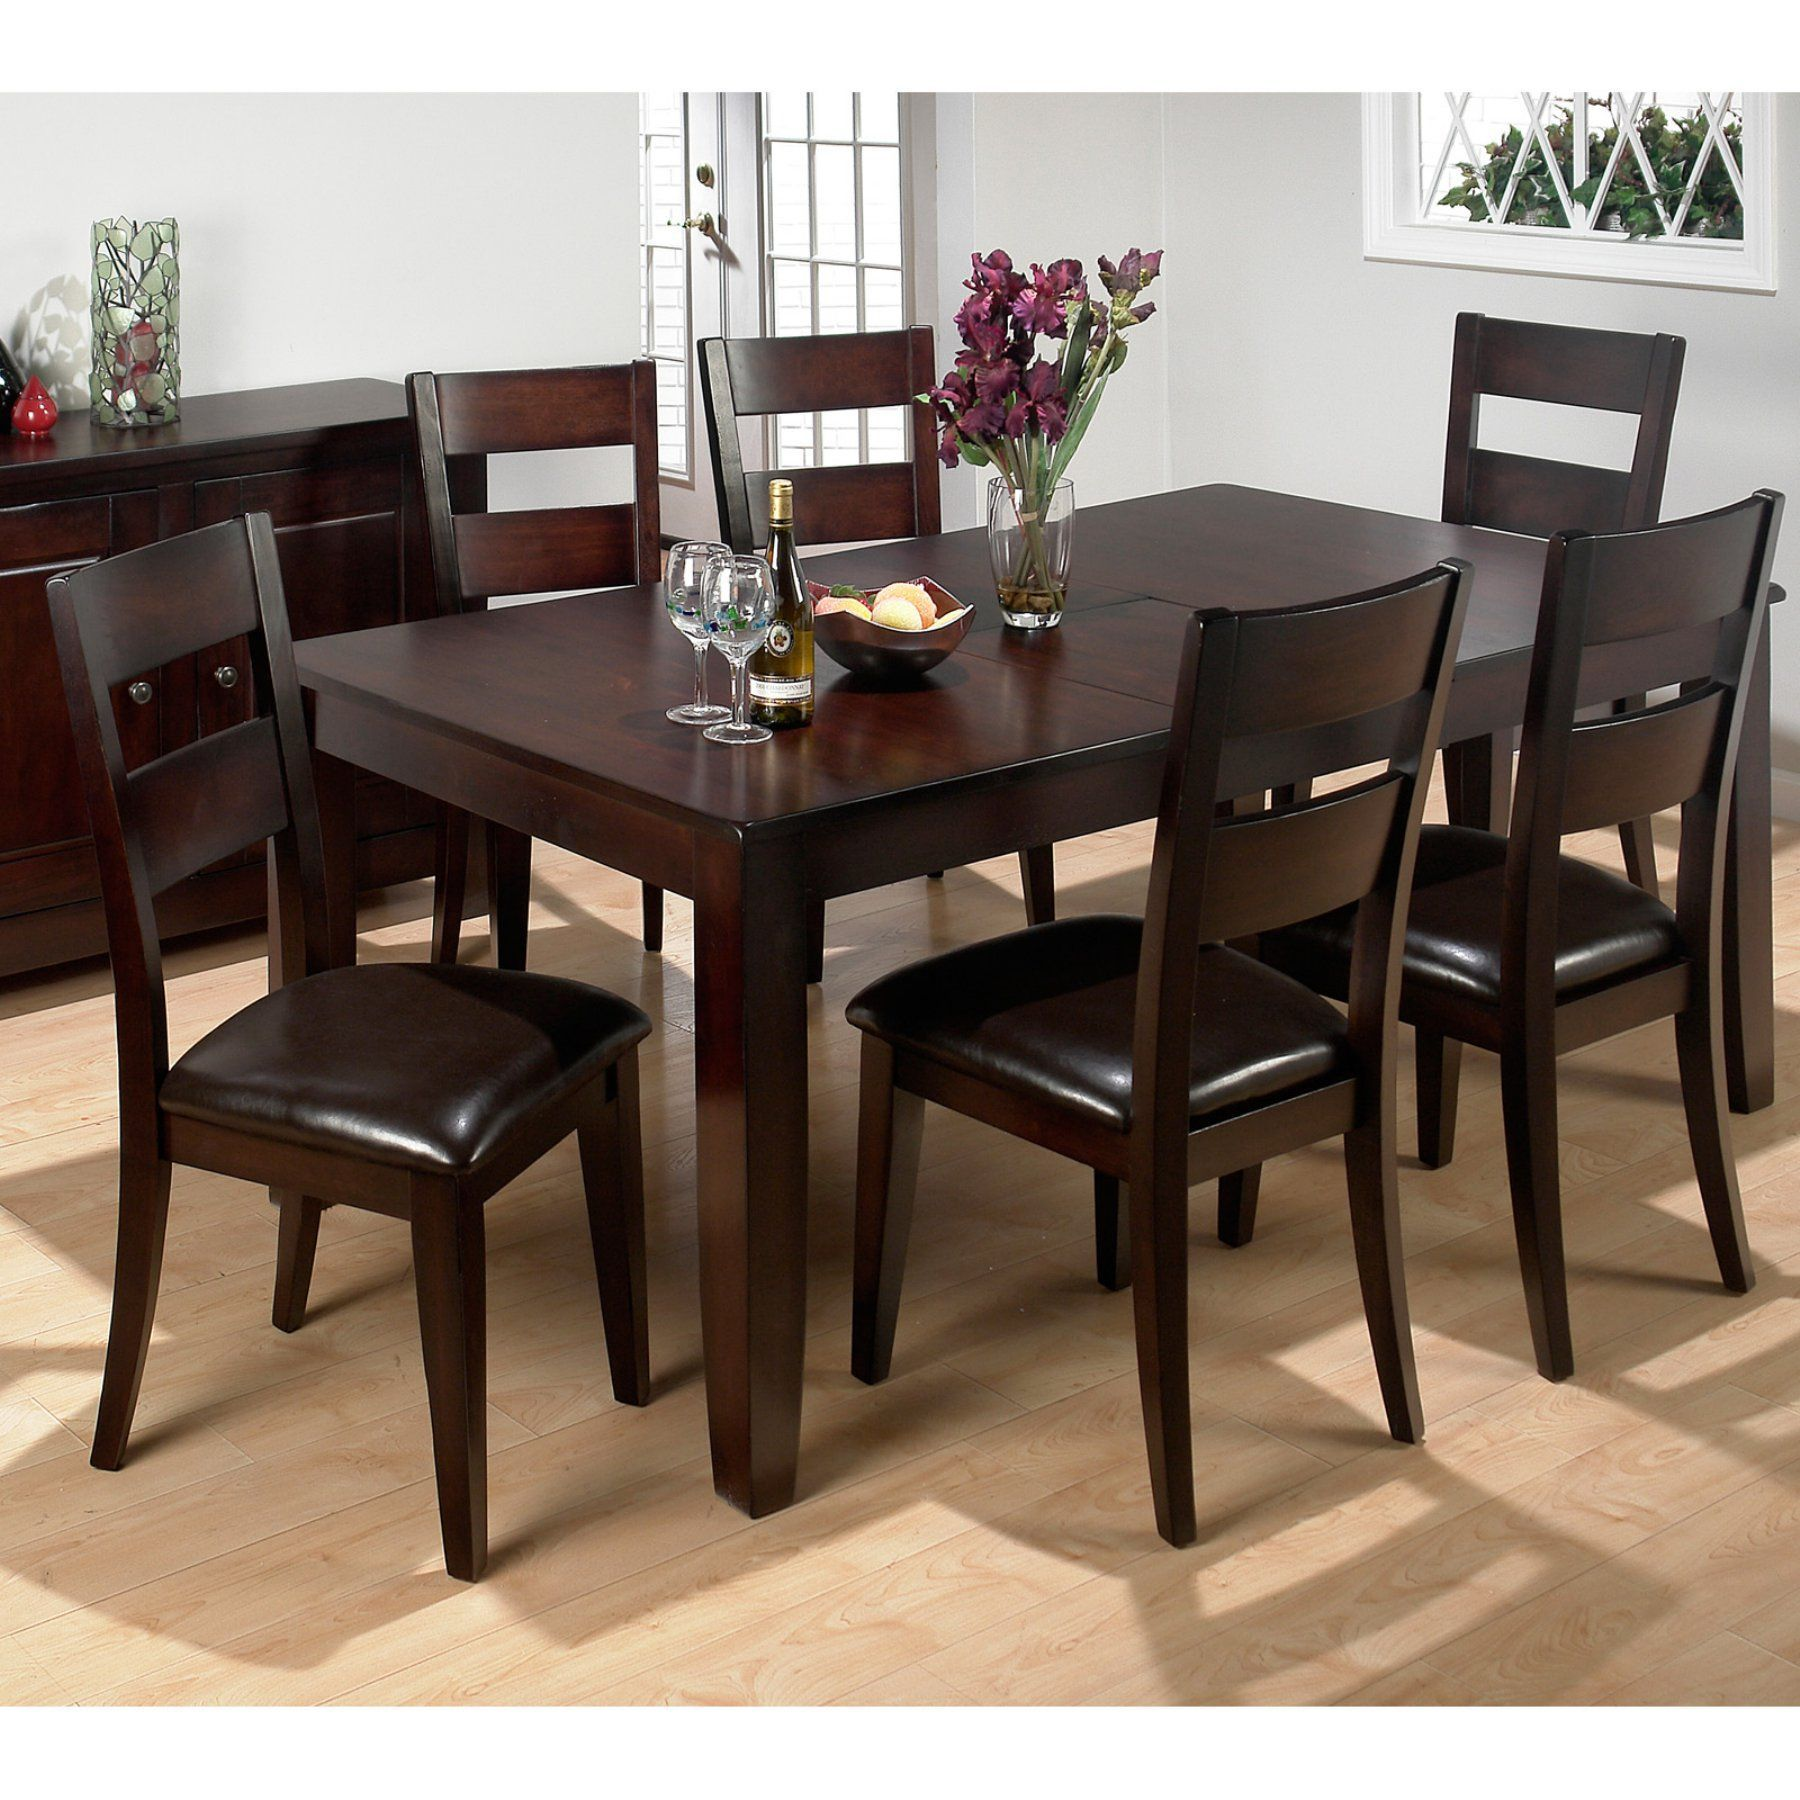 cheap dining room table and chairs. Jofran Rustic Prairie 7 Piece Dining Set - JSI947 Cheap Room Table And Chairs F